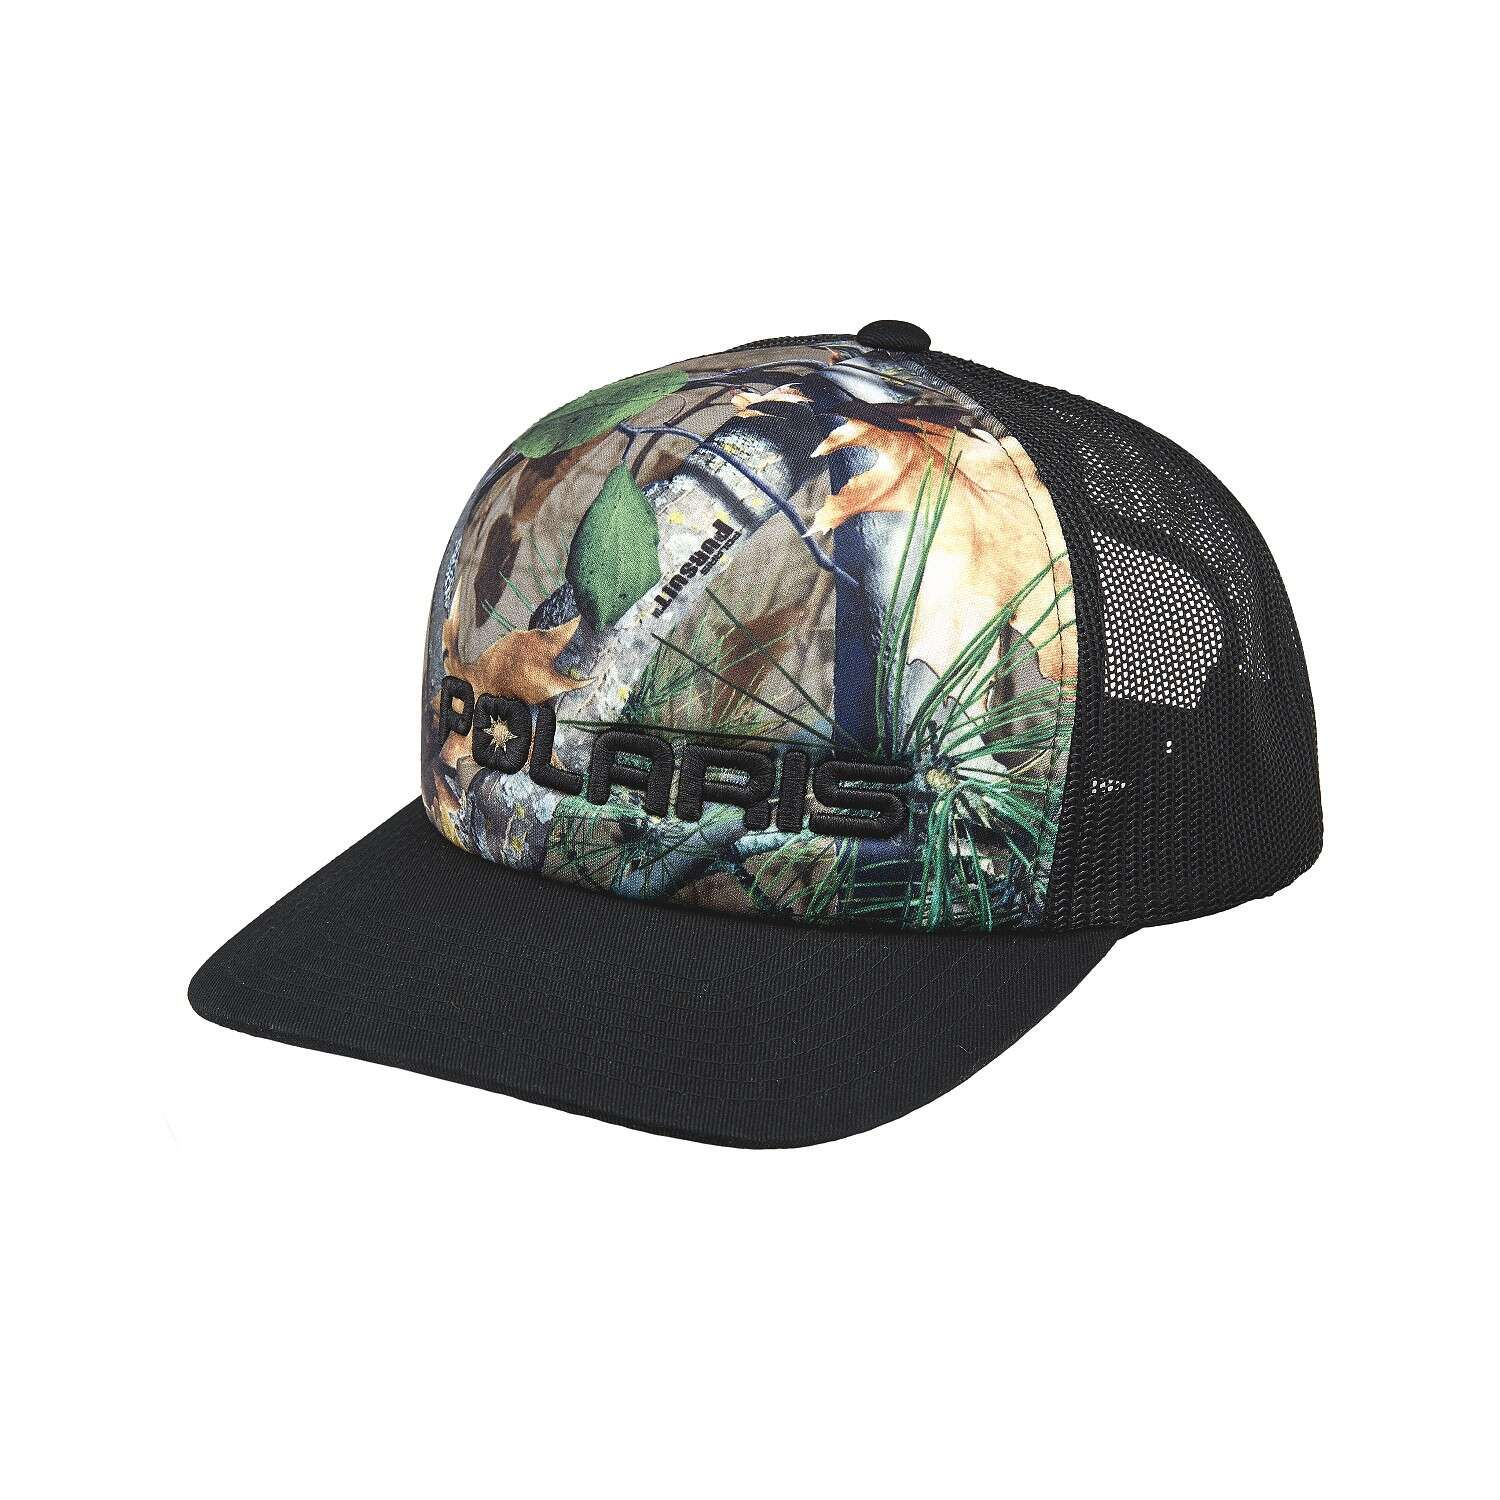 Men's Camo Trucker Cap